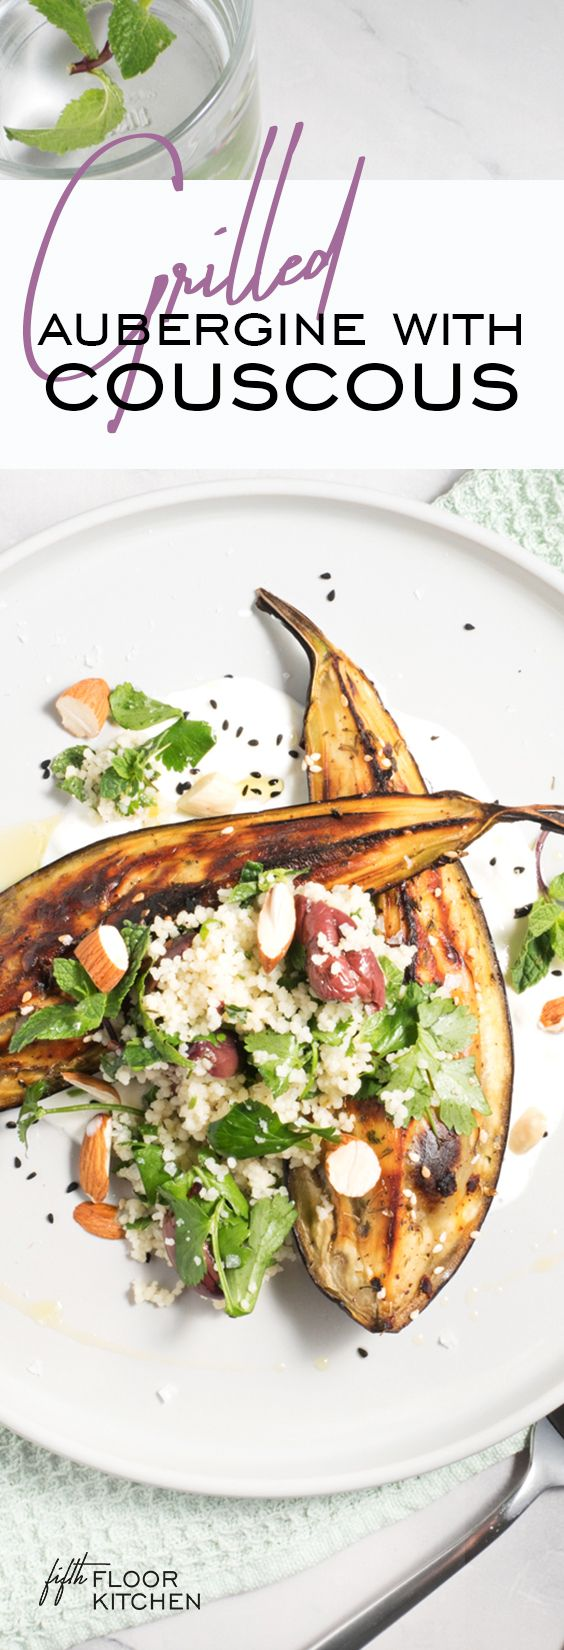 Healthy and delicious za'atar roasted aubergine with almond couscous on Greek yoghurt.